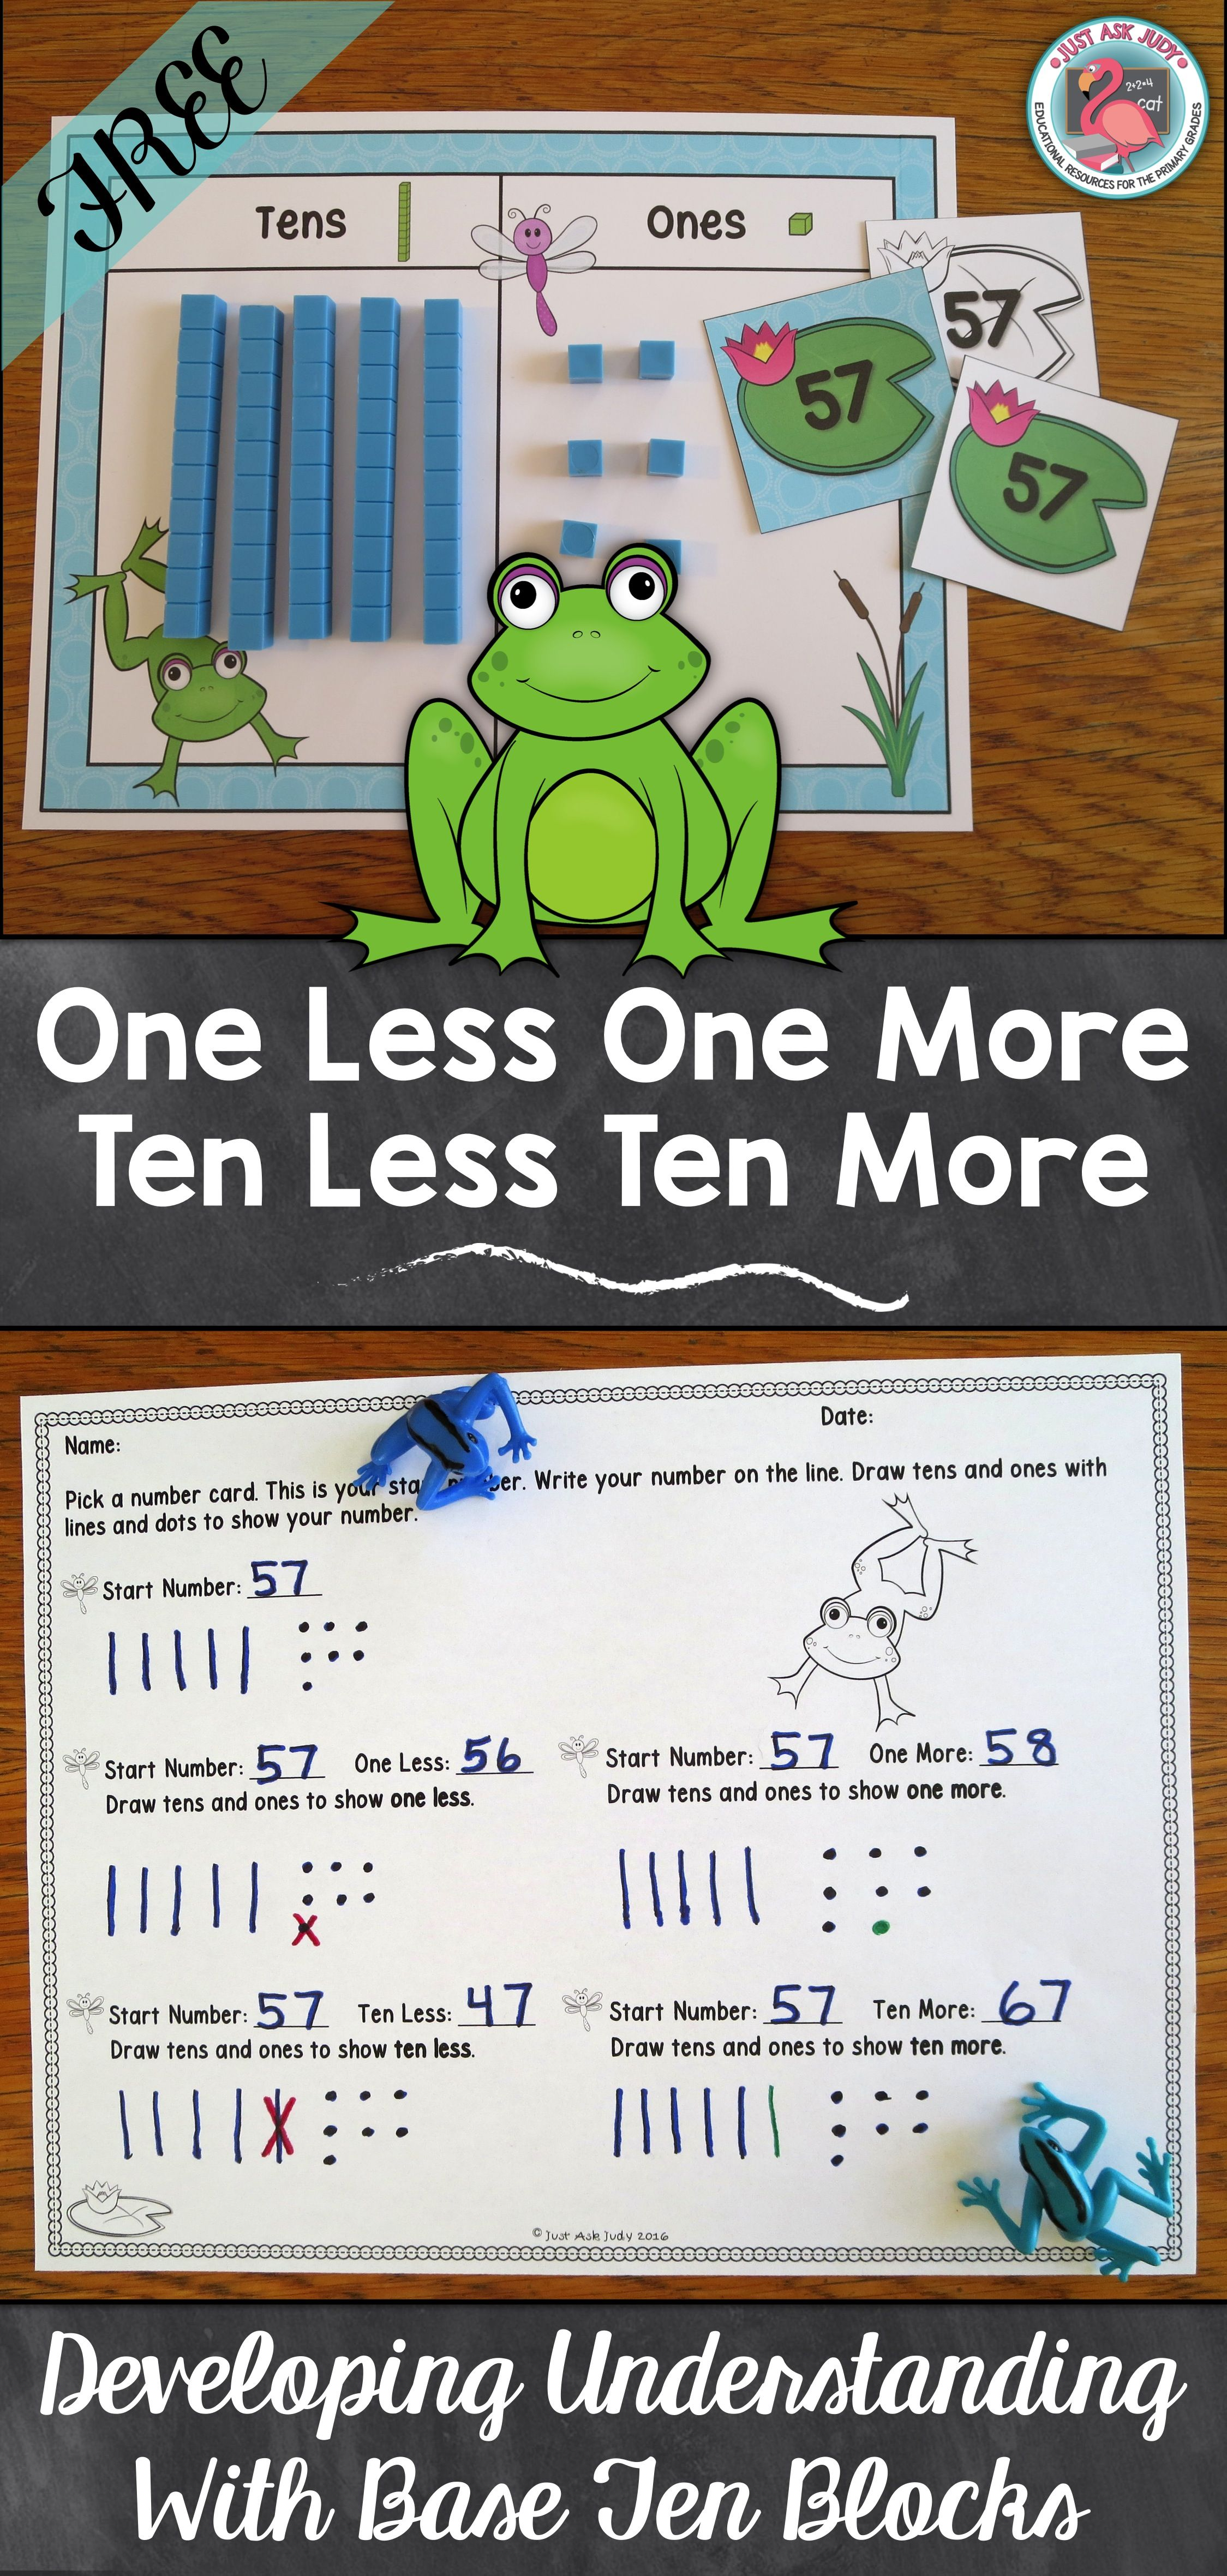 1 Less 1 More 10 Less 10 More Activity With Base Ten